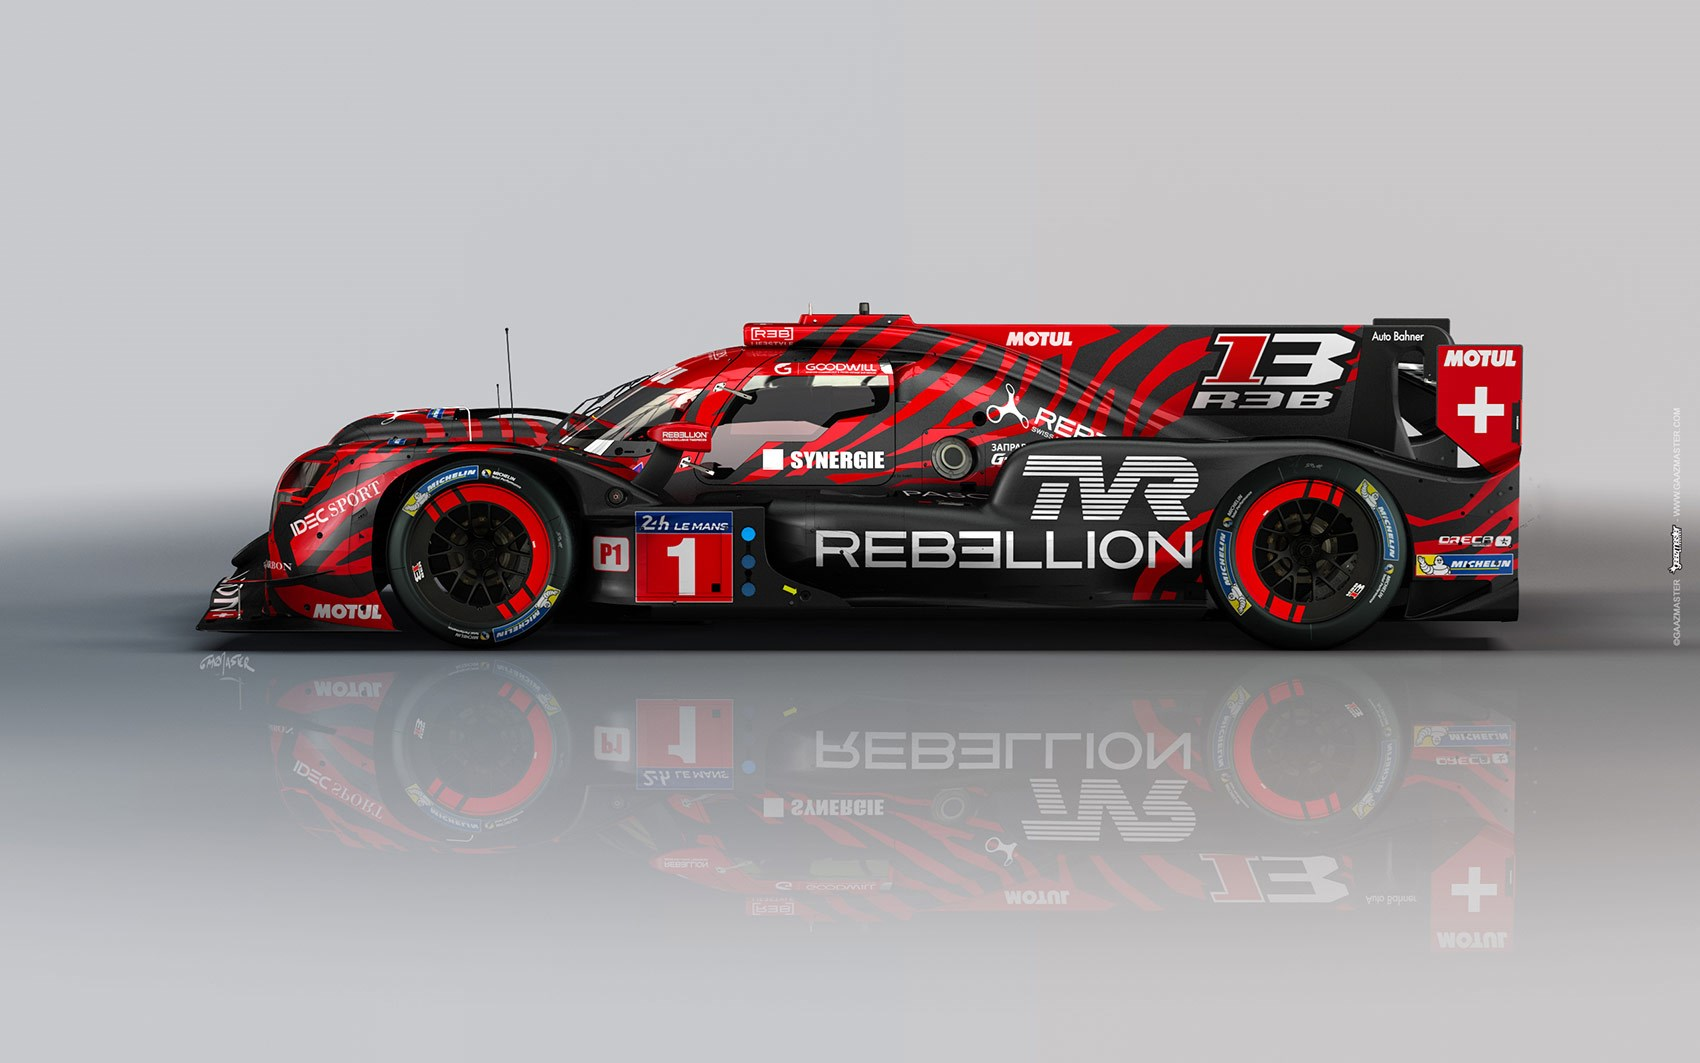 rebellion racing tvr lmp1 race car revealed car magazine. Black Bedroom Furniture Sets. Home Design Ideas